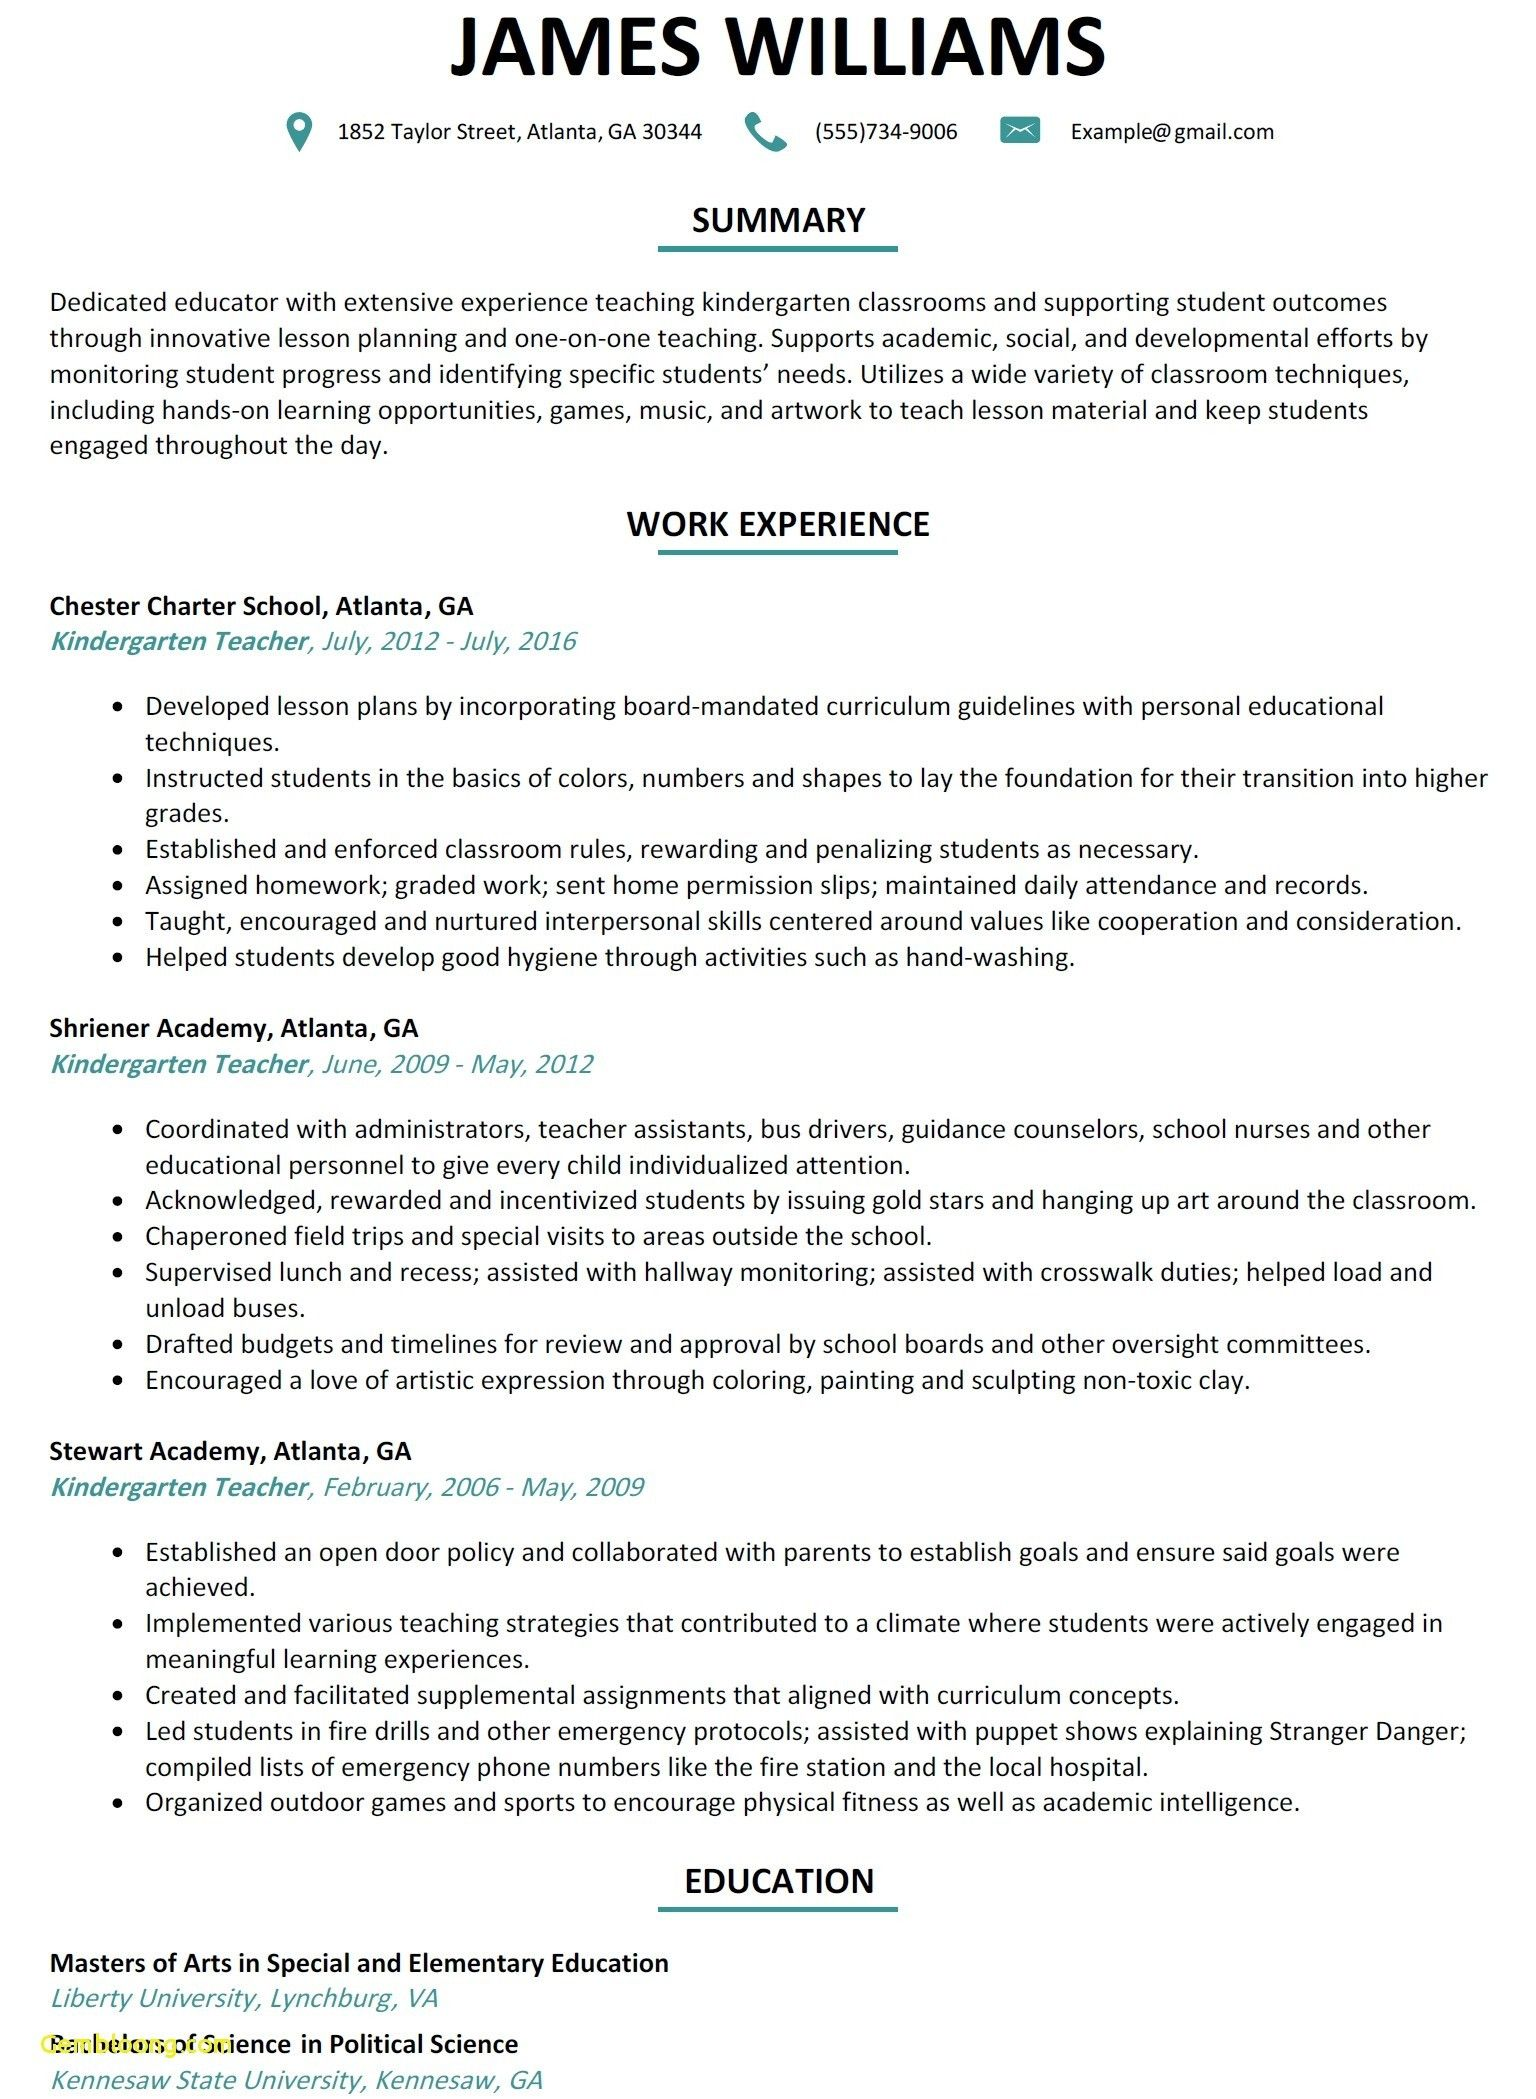 Resume Format Kindergarten Teacher With Images Teaching Resume